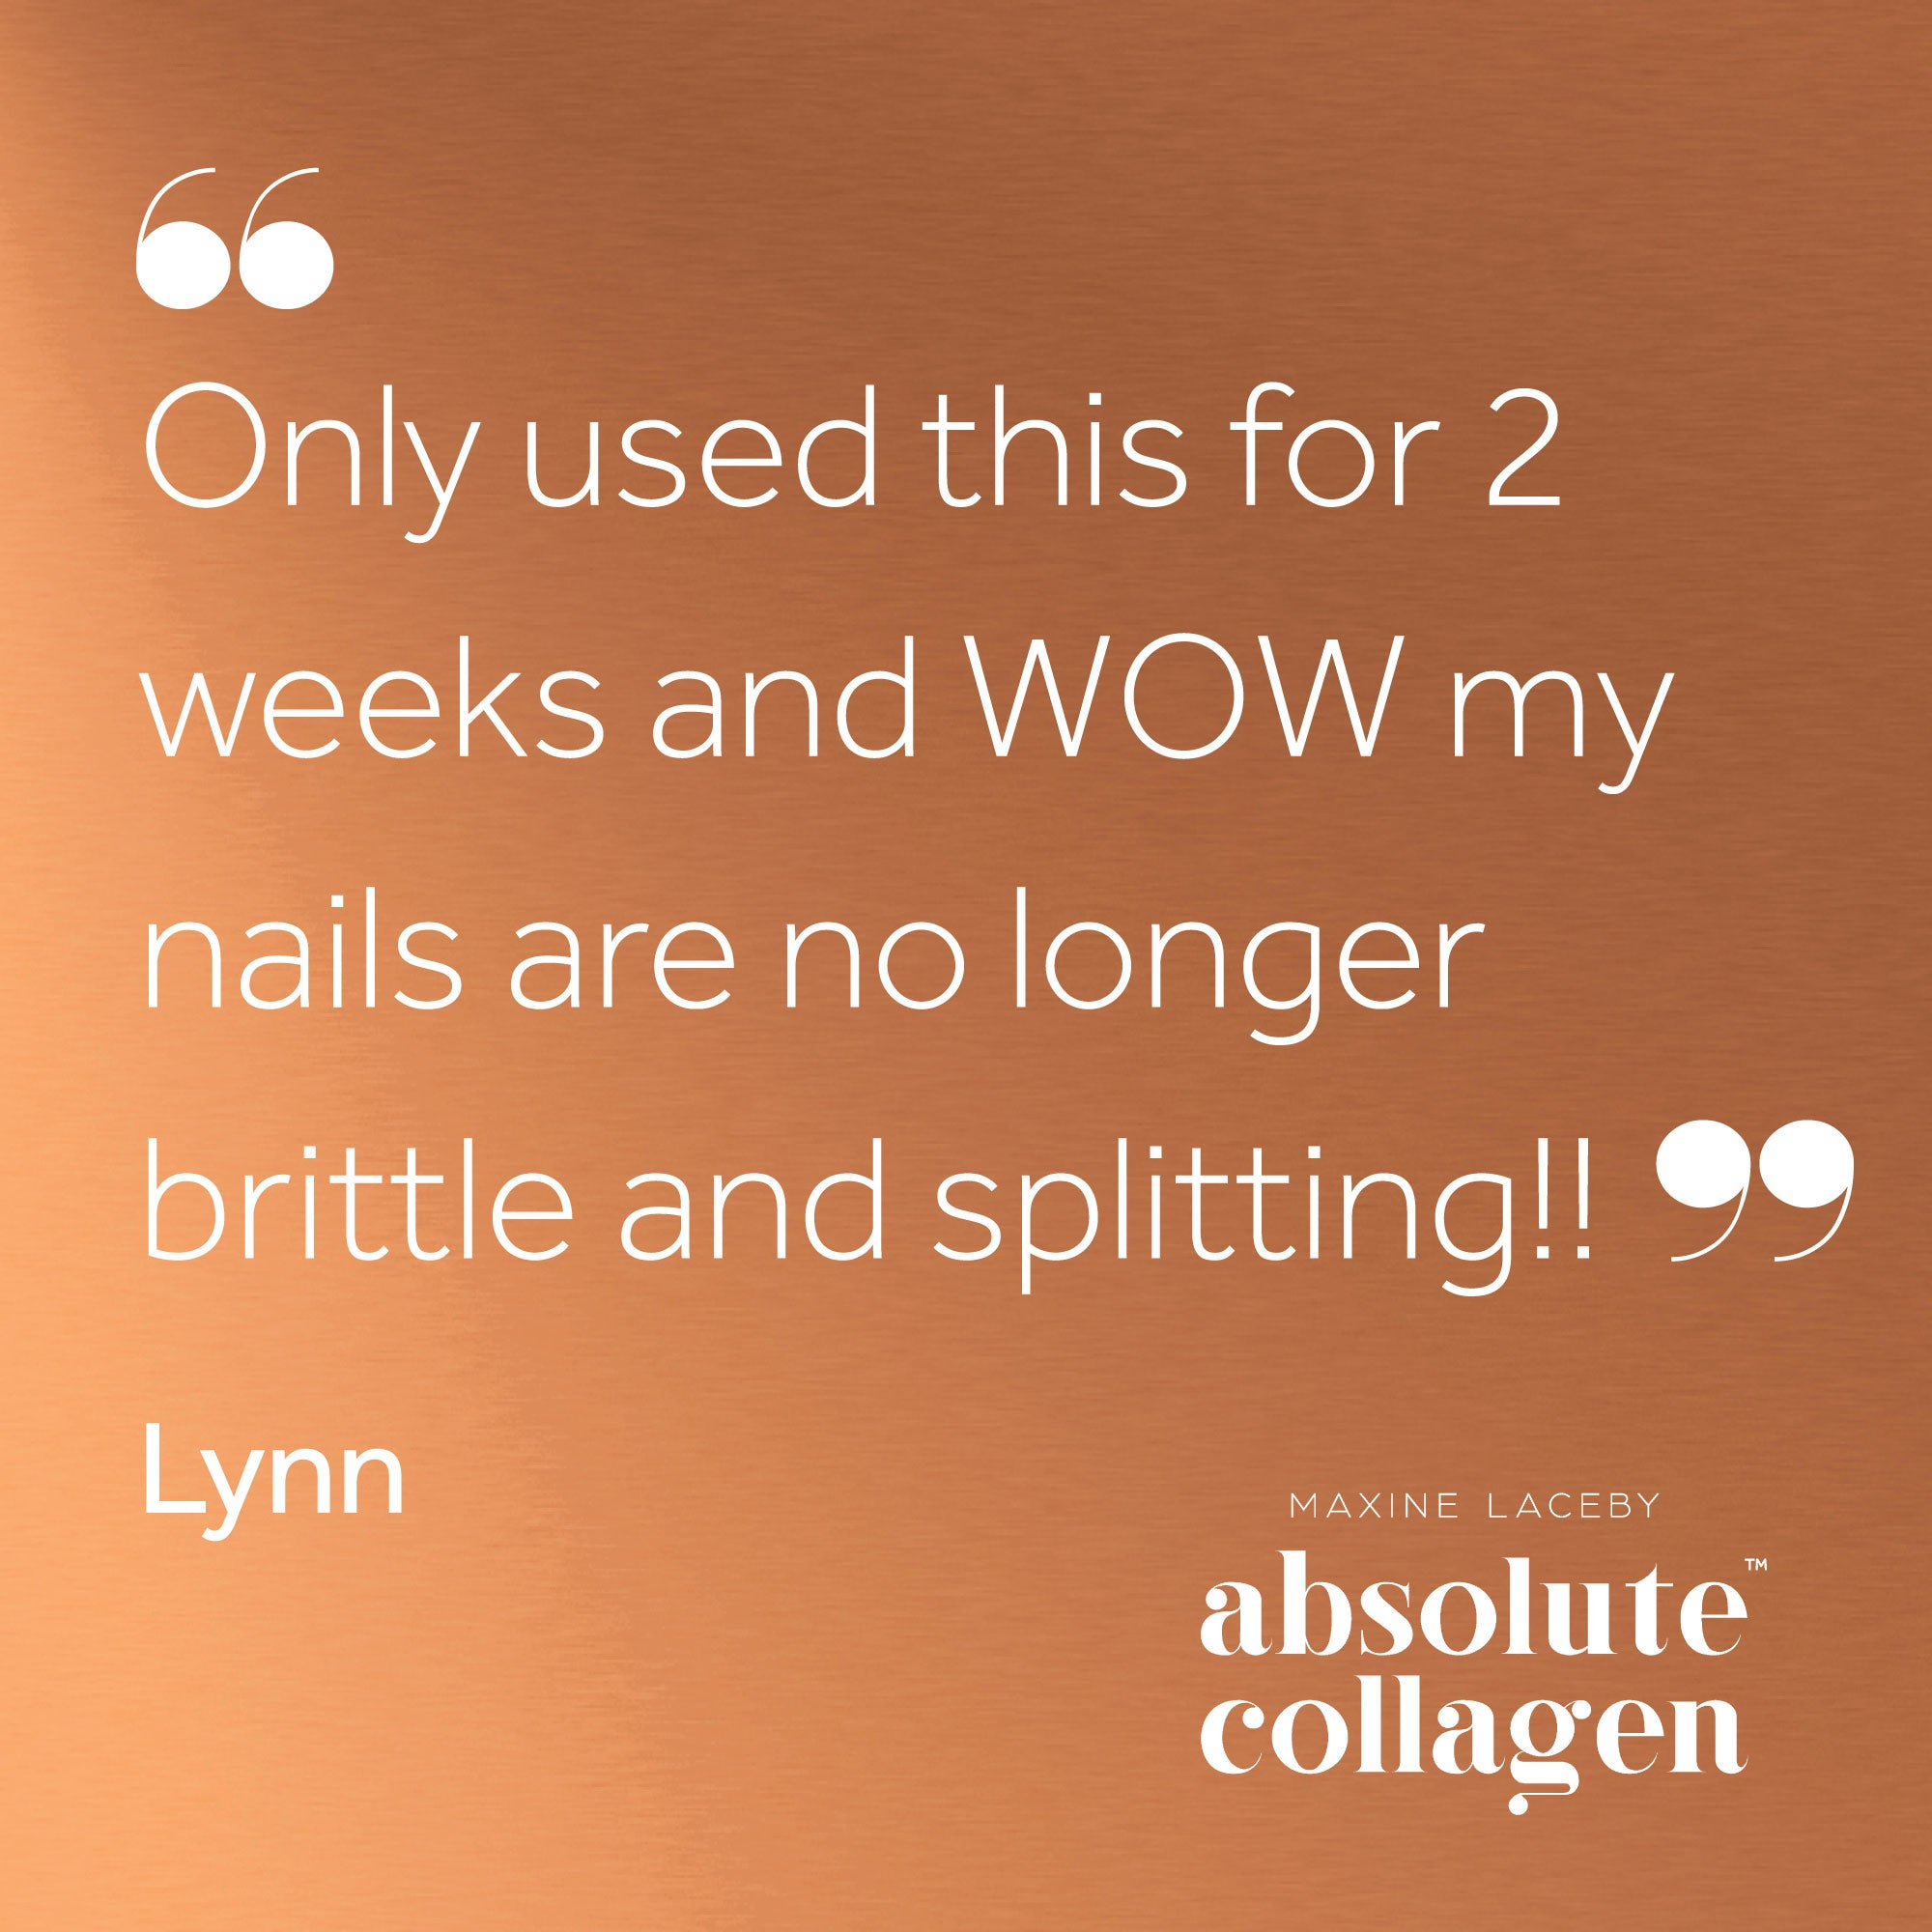 Quote from Lynn describing how Absolute Collagen helped her nails